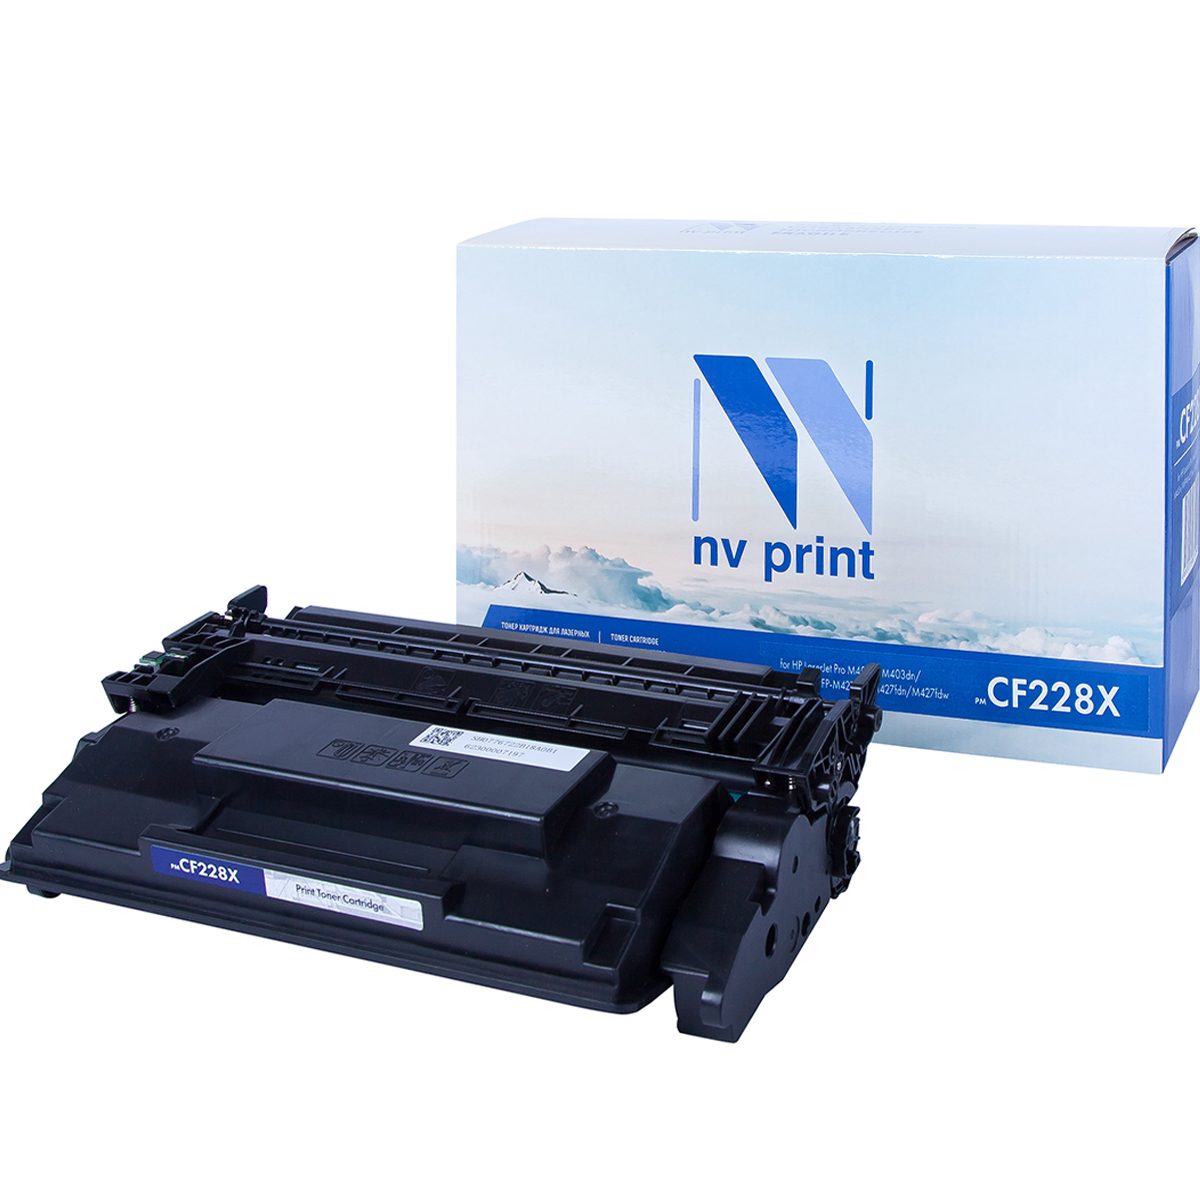 Фото - Картридж NV Print CF228X для Нewlett-Packard LaserJet Pro M403d/M403dn/M403n/MFP-M427dw/M427fdn/M427fdw (9200k) panasonic аlkaline power aaa lr03 2 шт